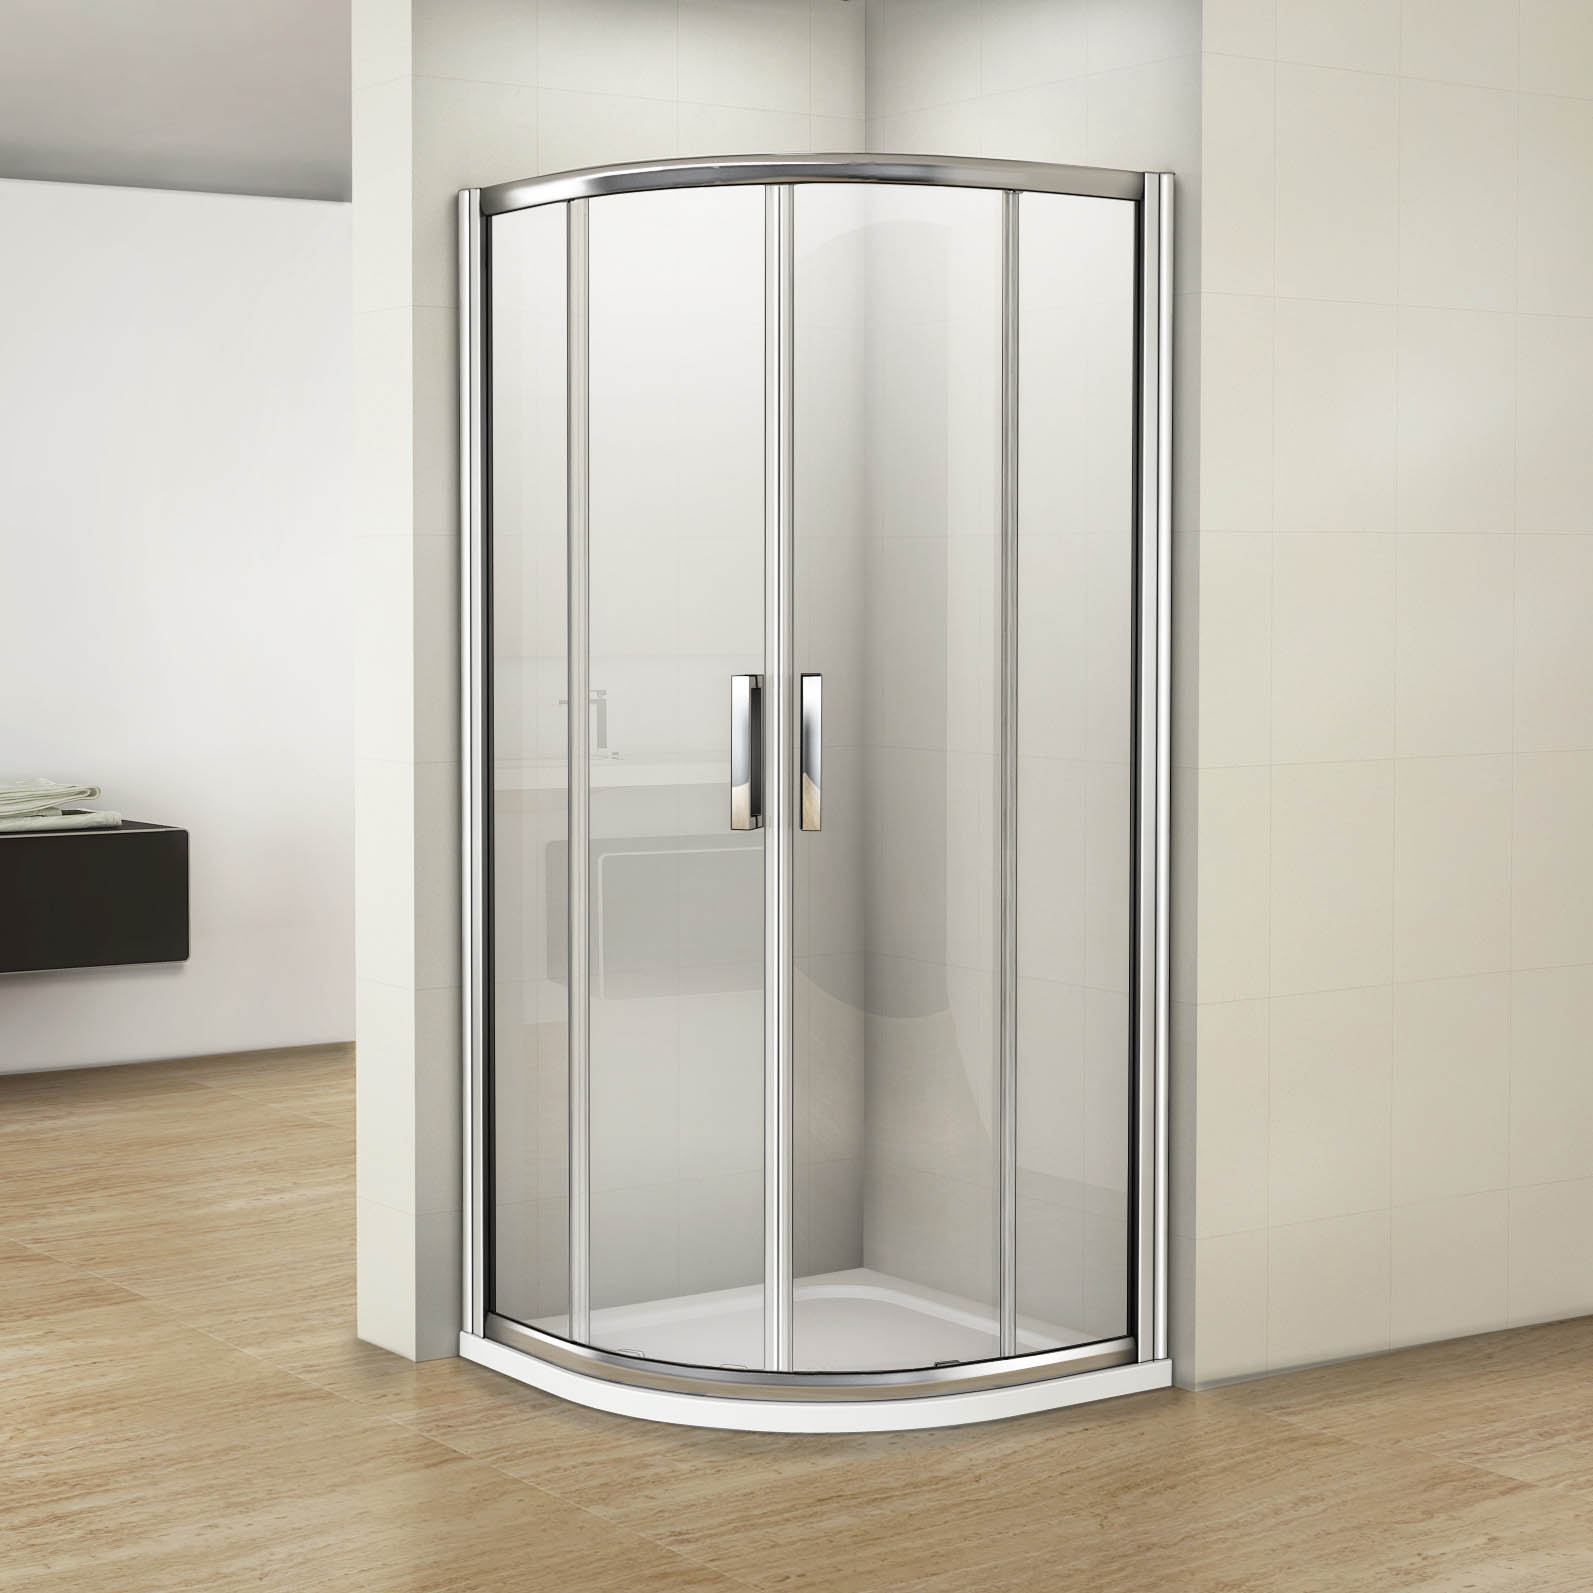 Luxury quadrant shower enclosure easy clean 8mm glass bathroom cubicle tray ebay - Luxury shower cubicles ...